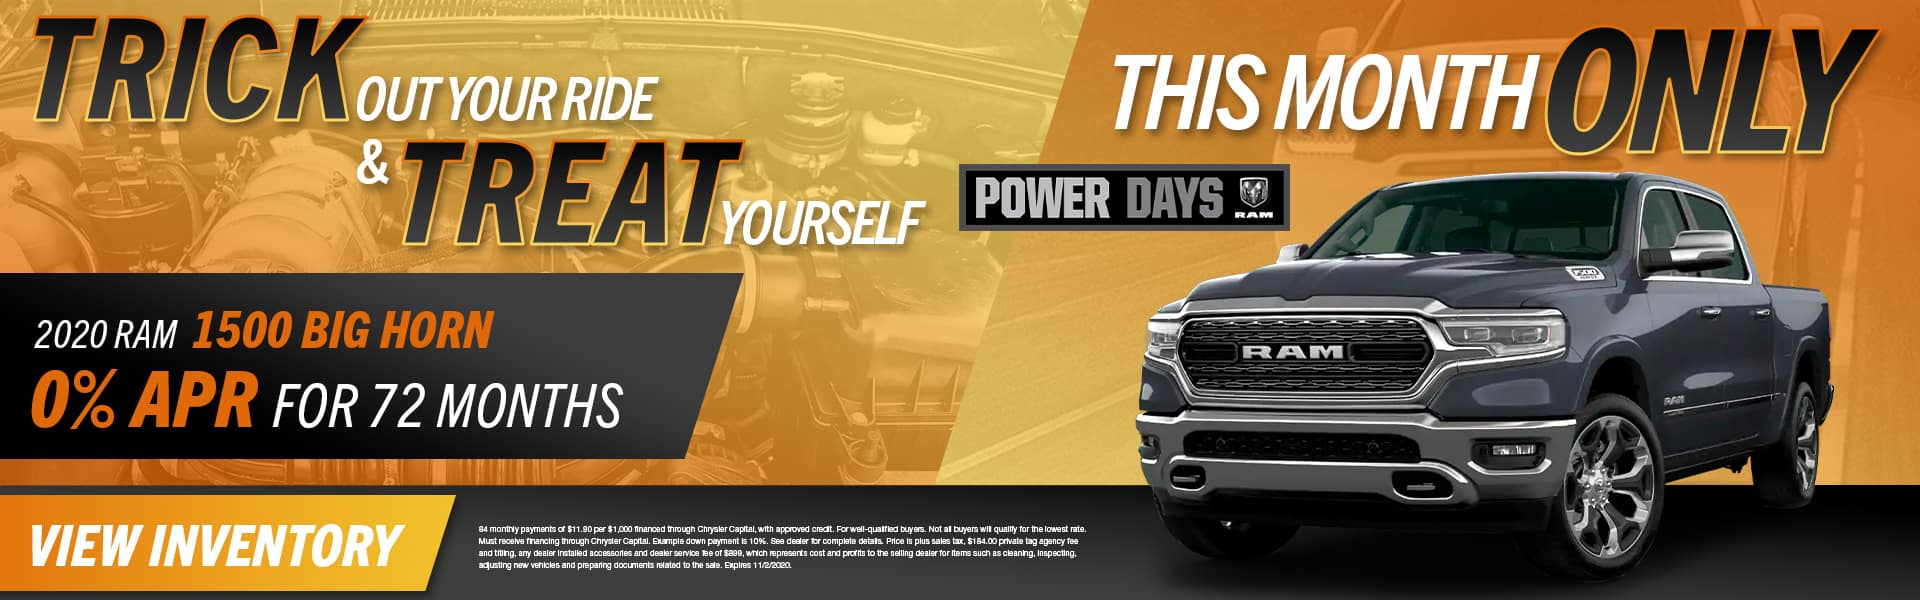 Trick Out Your Ride & Treat Yourself This Month Only | 2020 RAM 1500 Big Horn | 0% APR For 72 Months